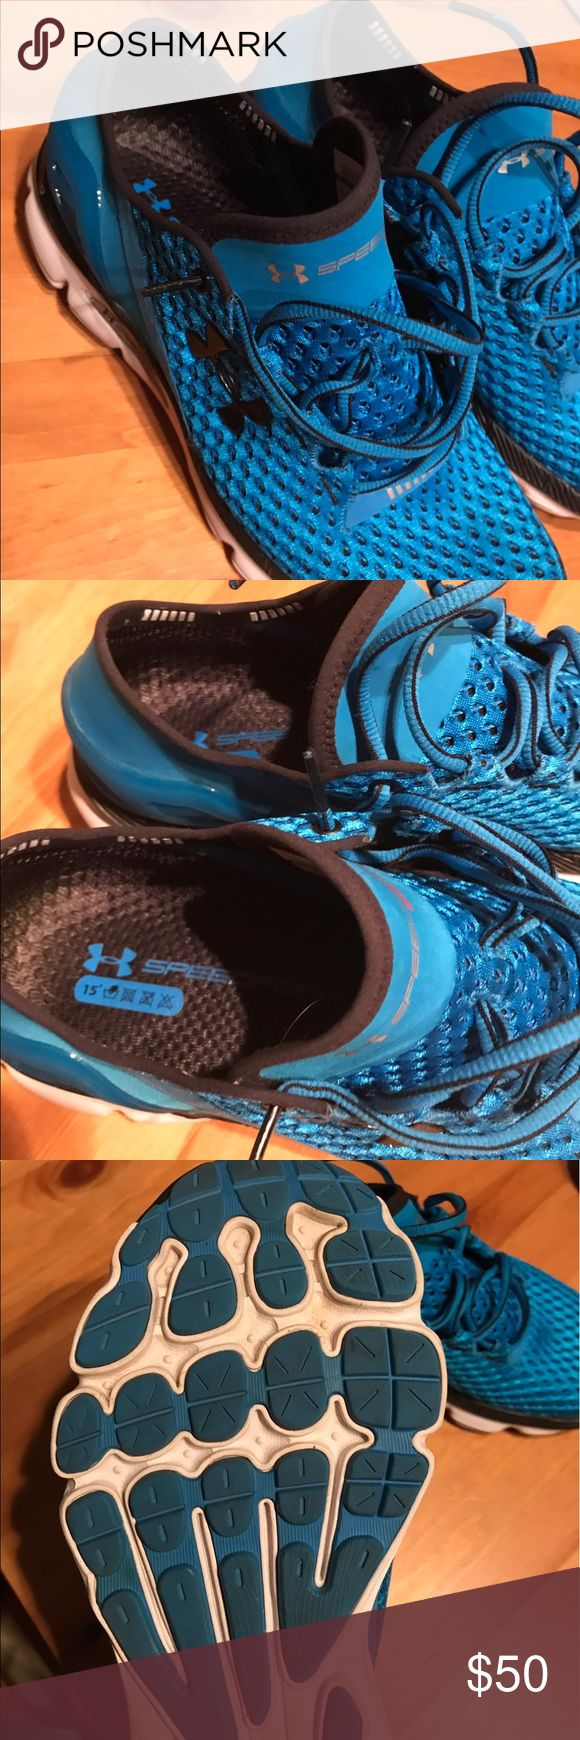 Under Armour speedform Gemini running shoe Under Armour speed firm Gemini running shoe in light blue and black. Size men's 8.5. Used but Barely, like new. See pictures. Under Armour Shoes Sneakers